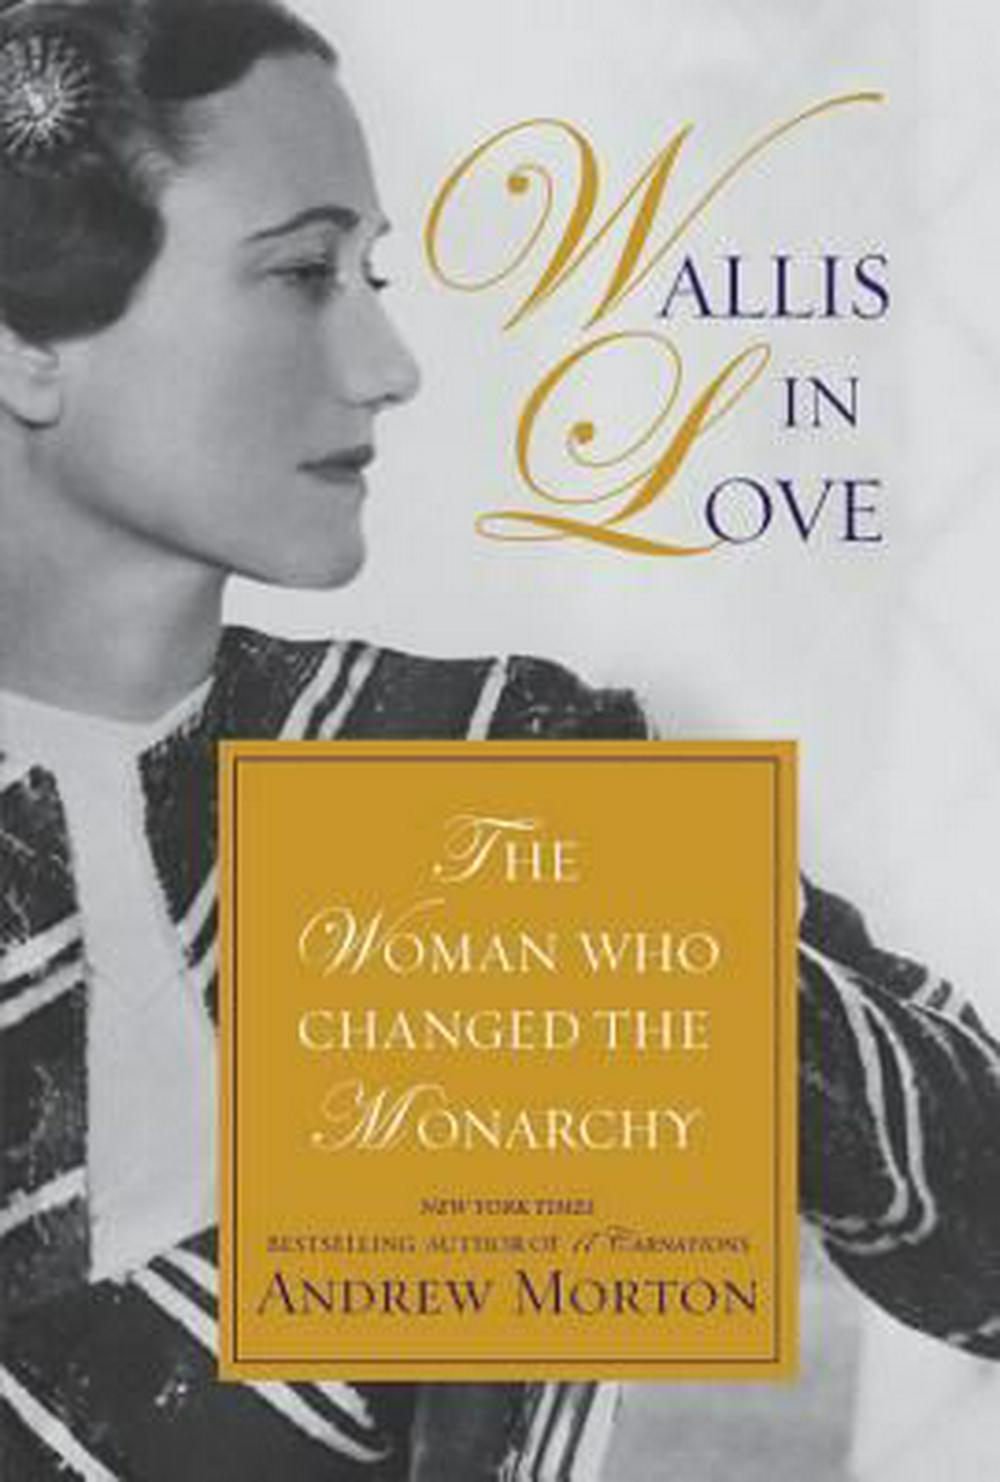 Wallis in Love: The Untold Life of the Duchess of Windsor, the Woman Who Changed the Monarchy by Andrew Morton, ISBN: 9781455566976